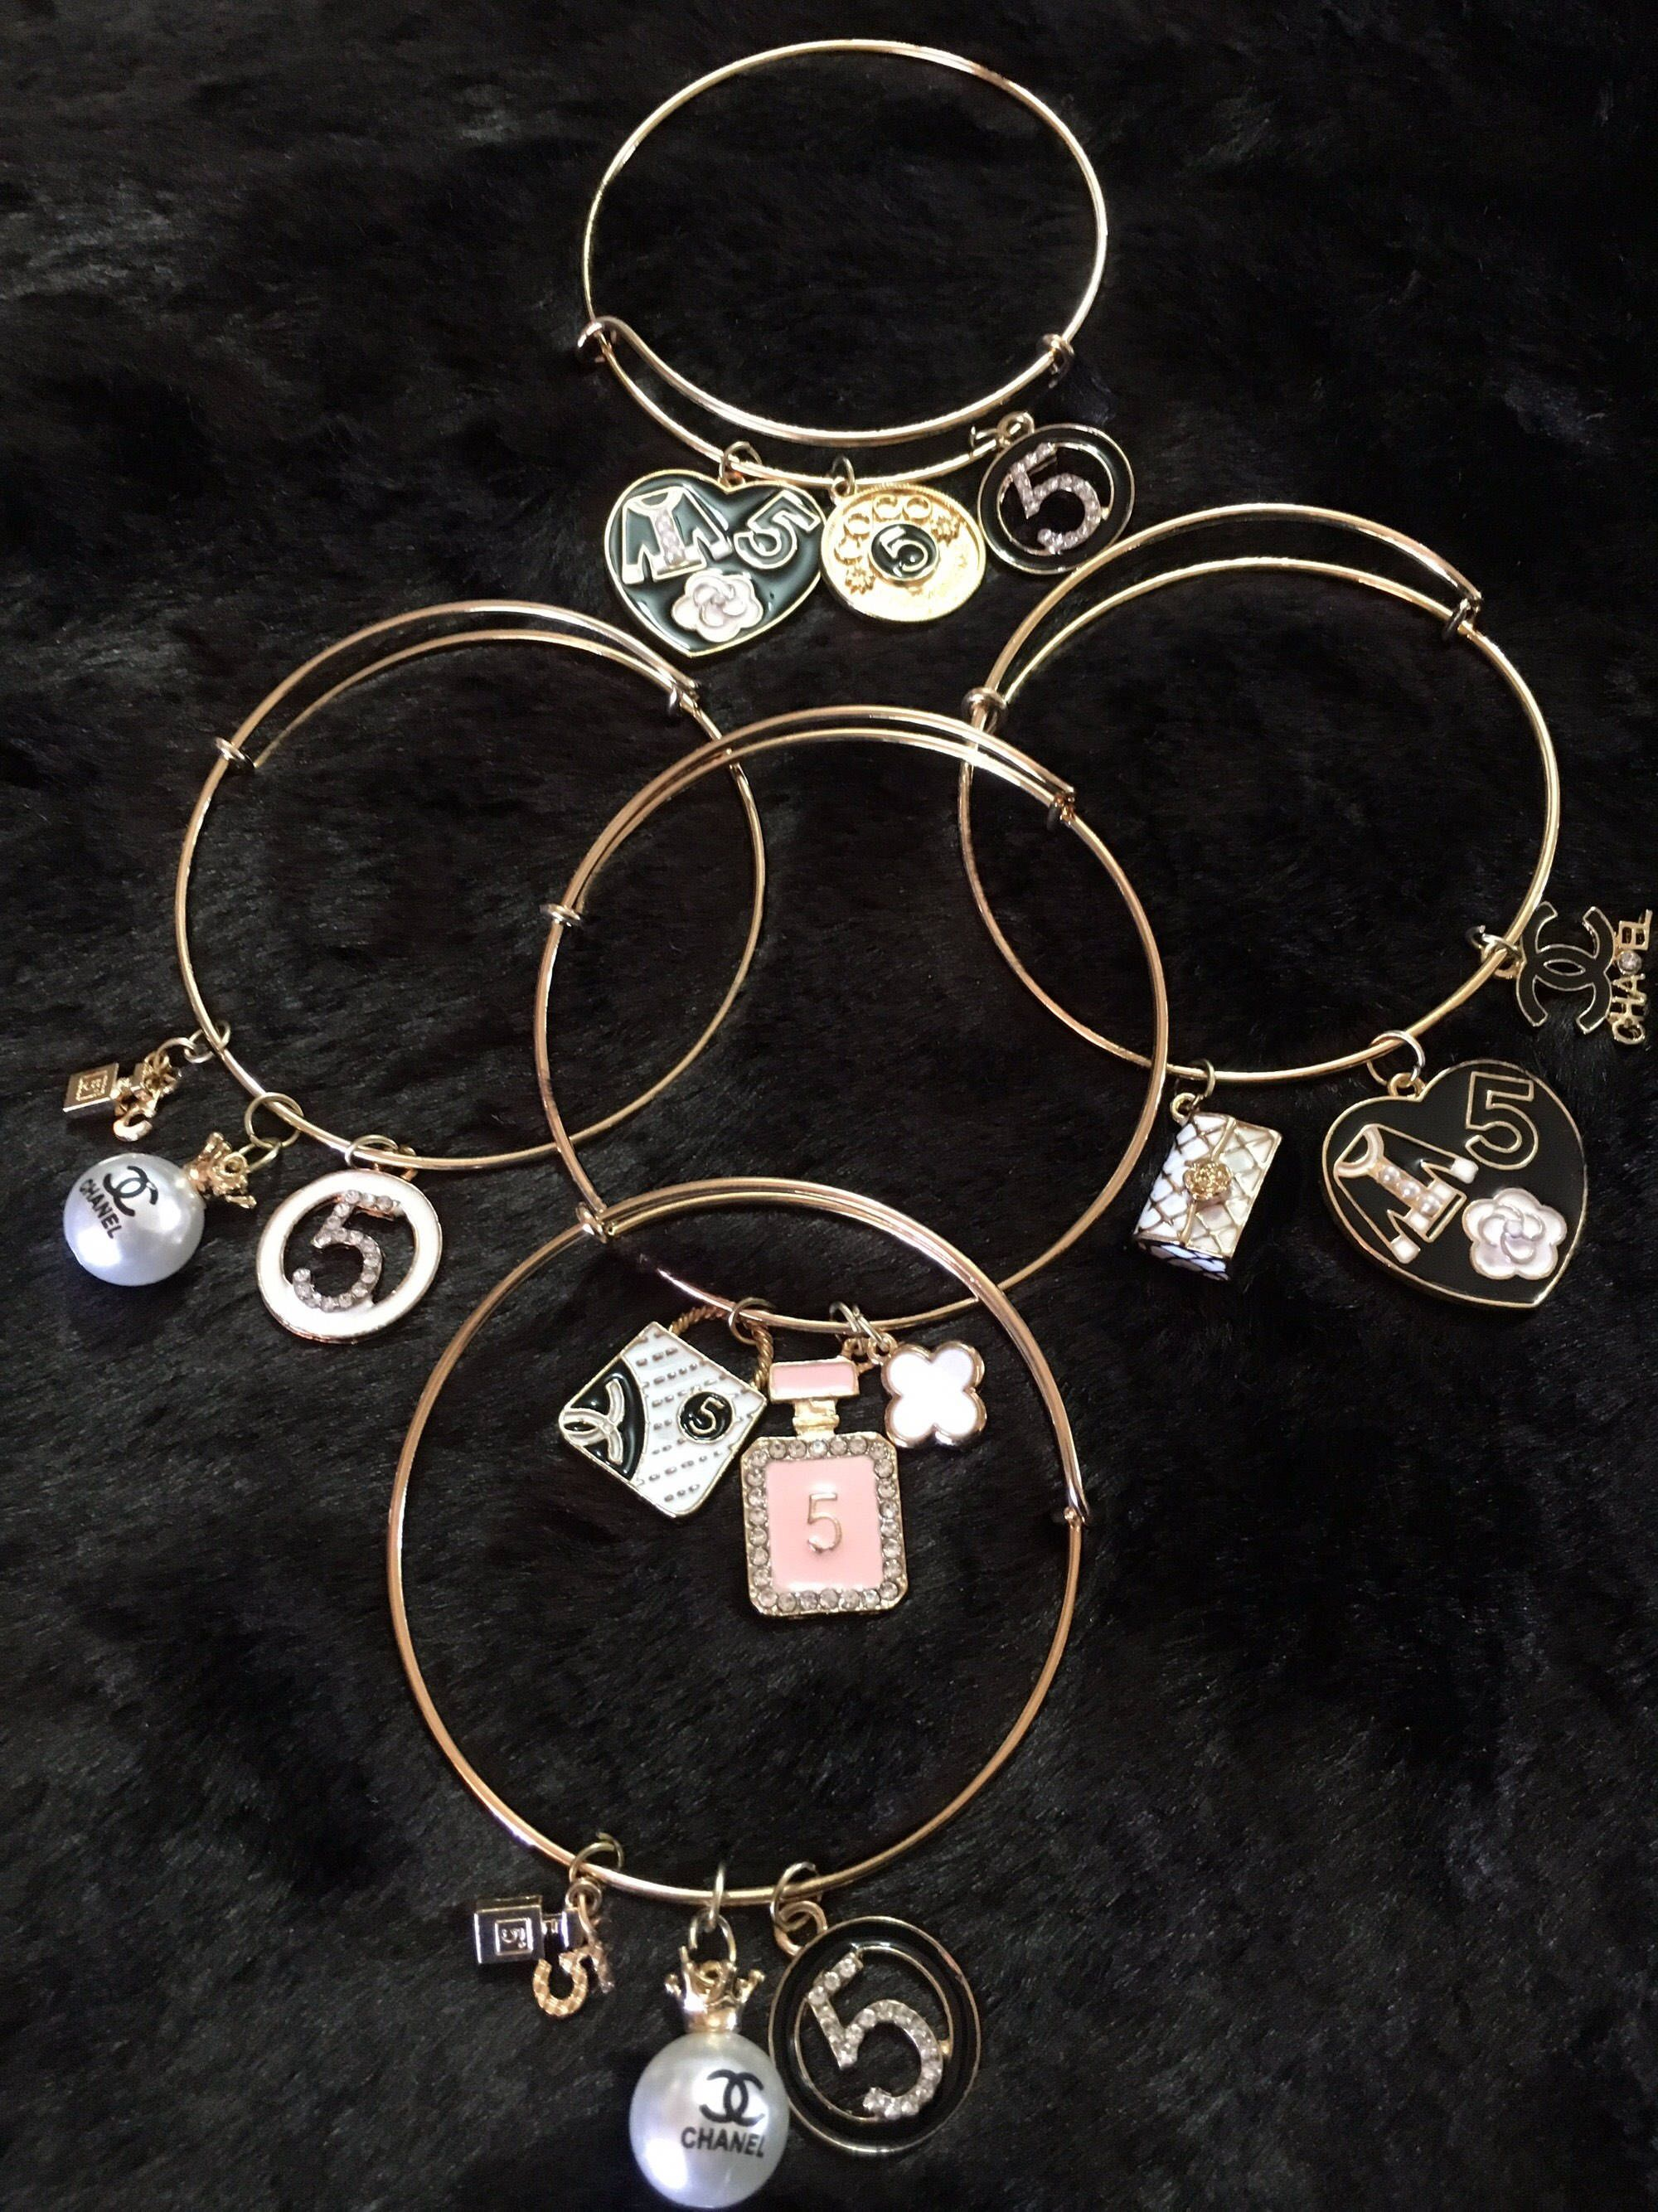 gold charm sweetie xs en bangle eu london links rose bracelets of vermeil hires bracelet bangles